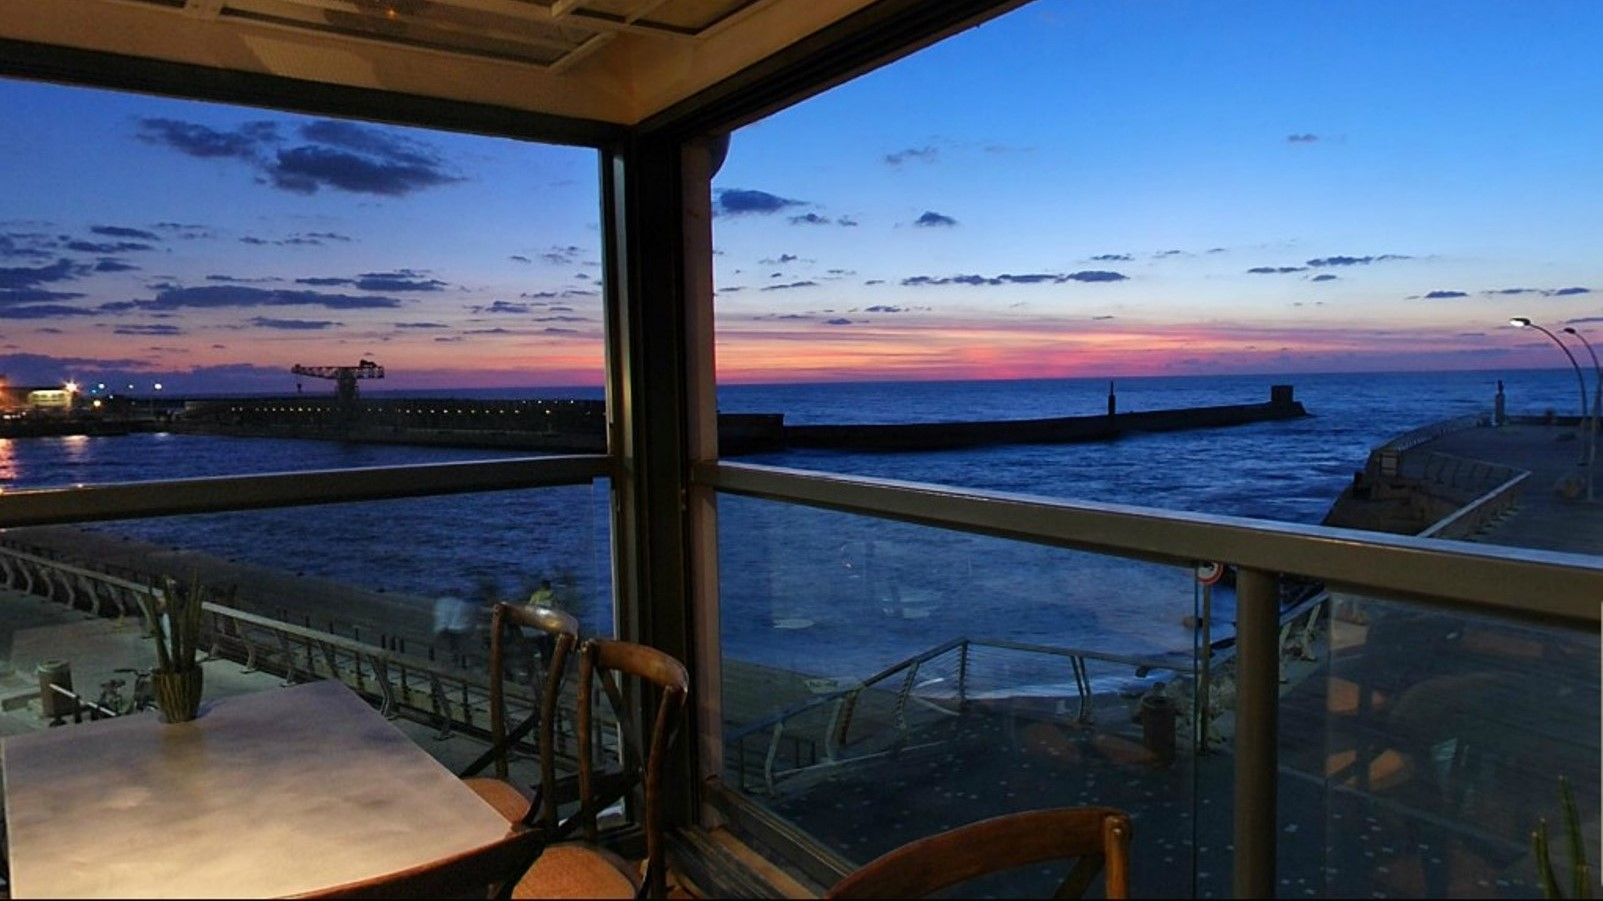 Kitchen Market's view over the Tel Aviv shore. Photo: screenshot